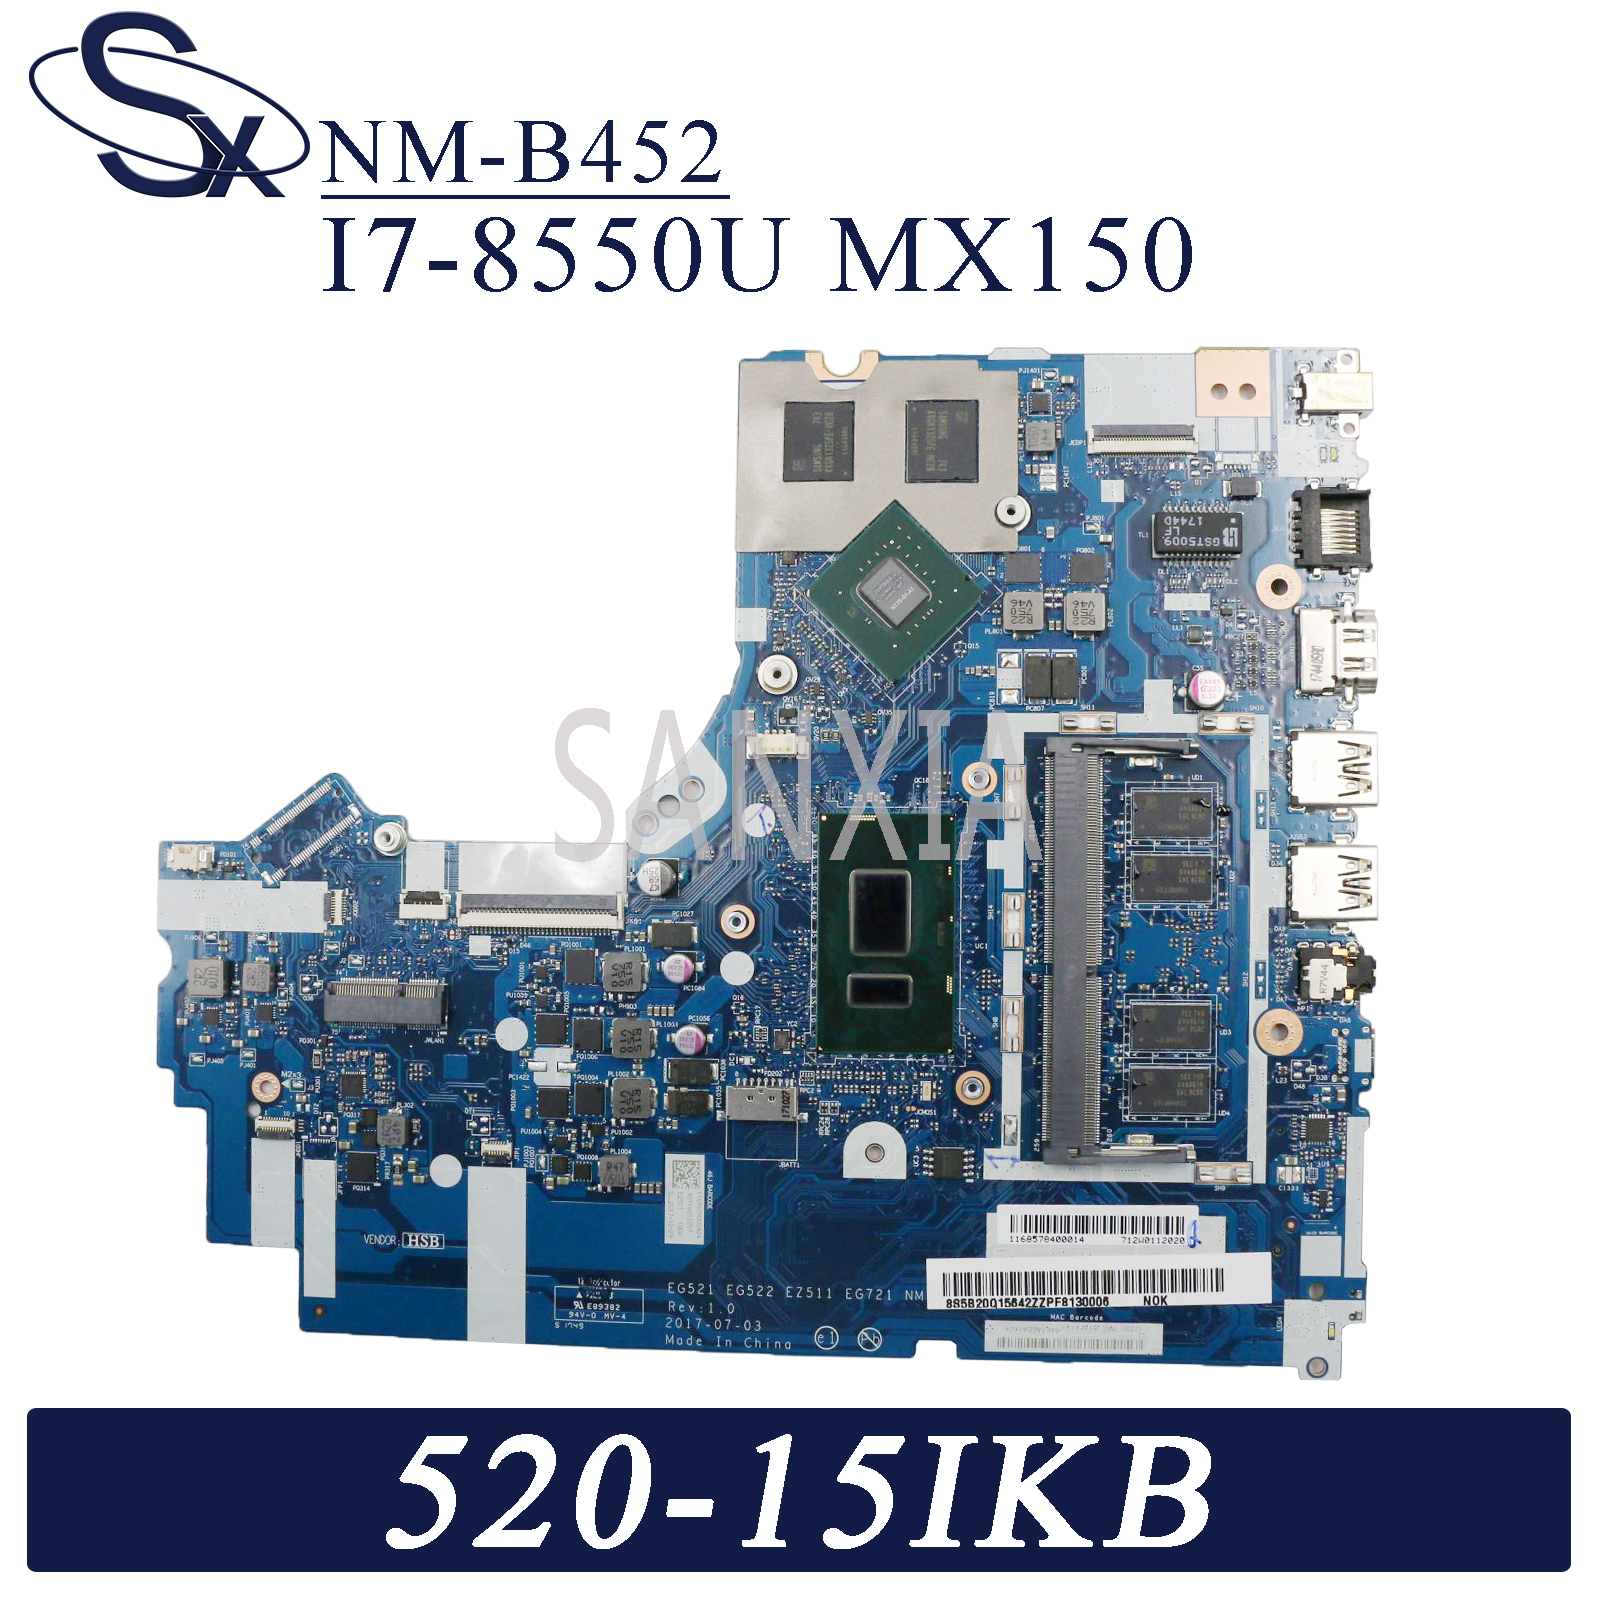 KEFU NM-B452 <font><b>Laptop</b></font> motherboard for Lenovo Ideapad 520-15IKB original mainboard 4GB-RAM I7-8550U <font><b>MX150</b></font> image